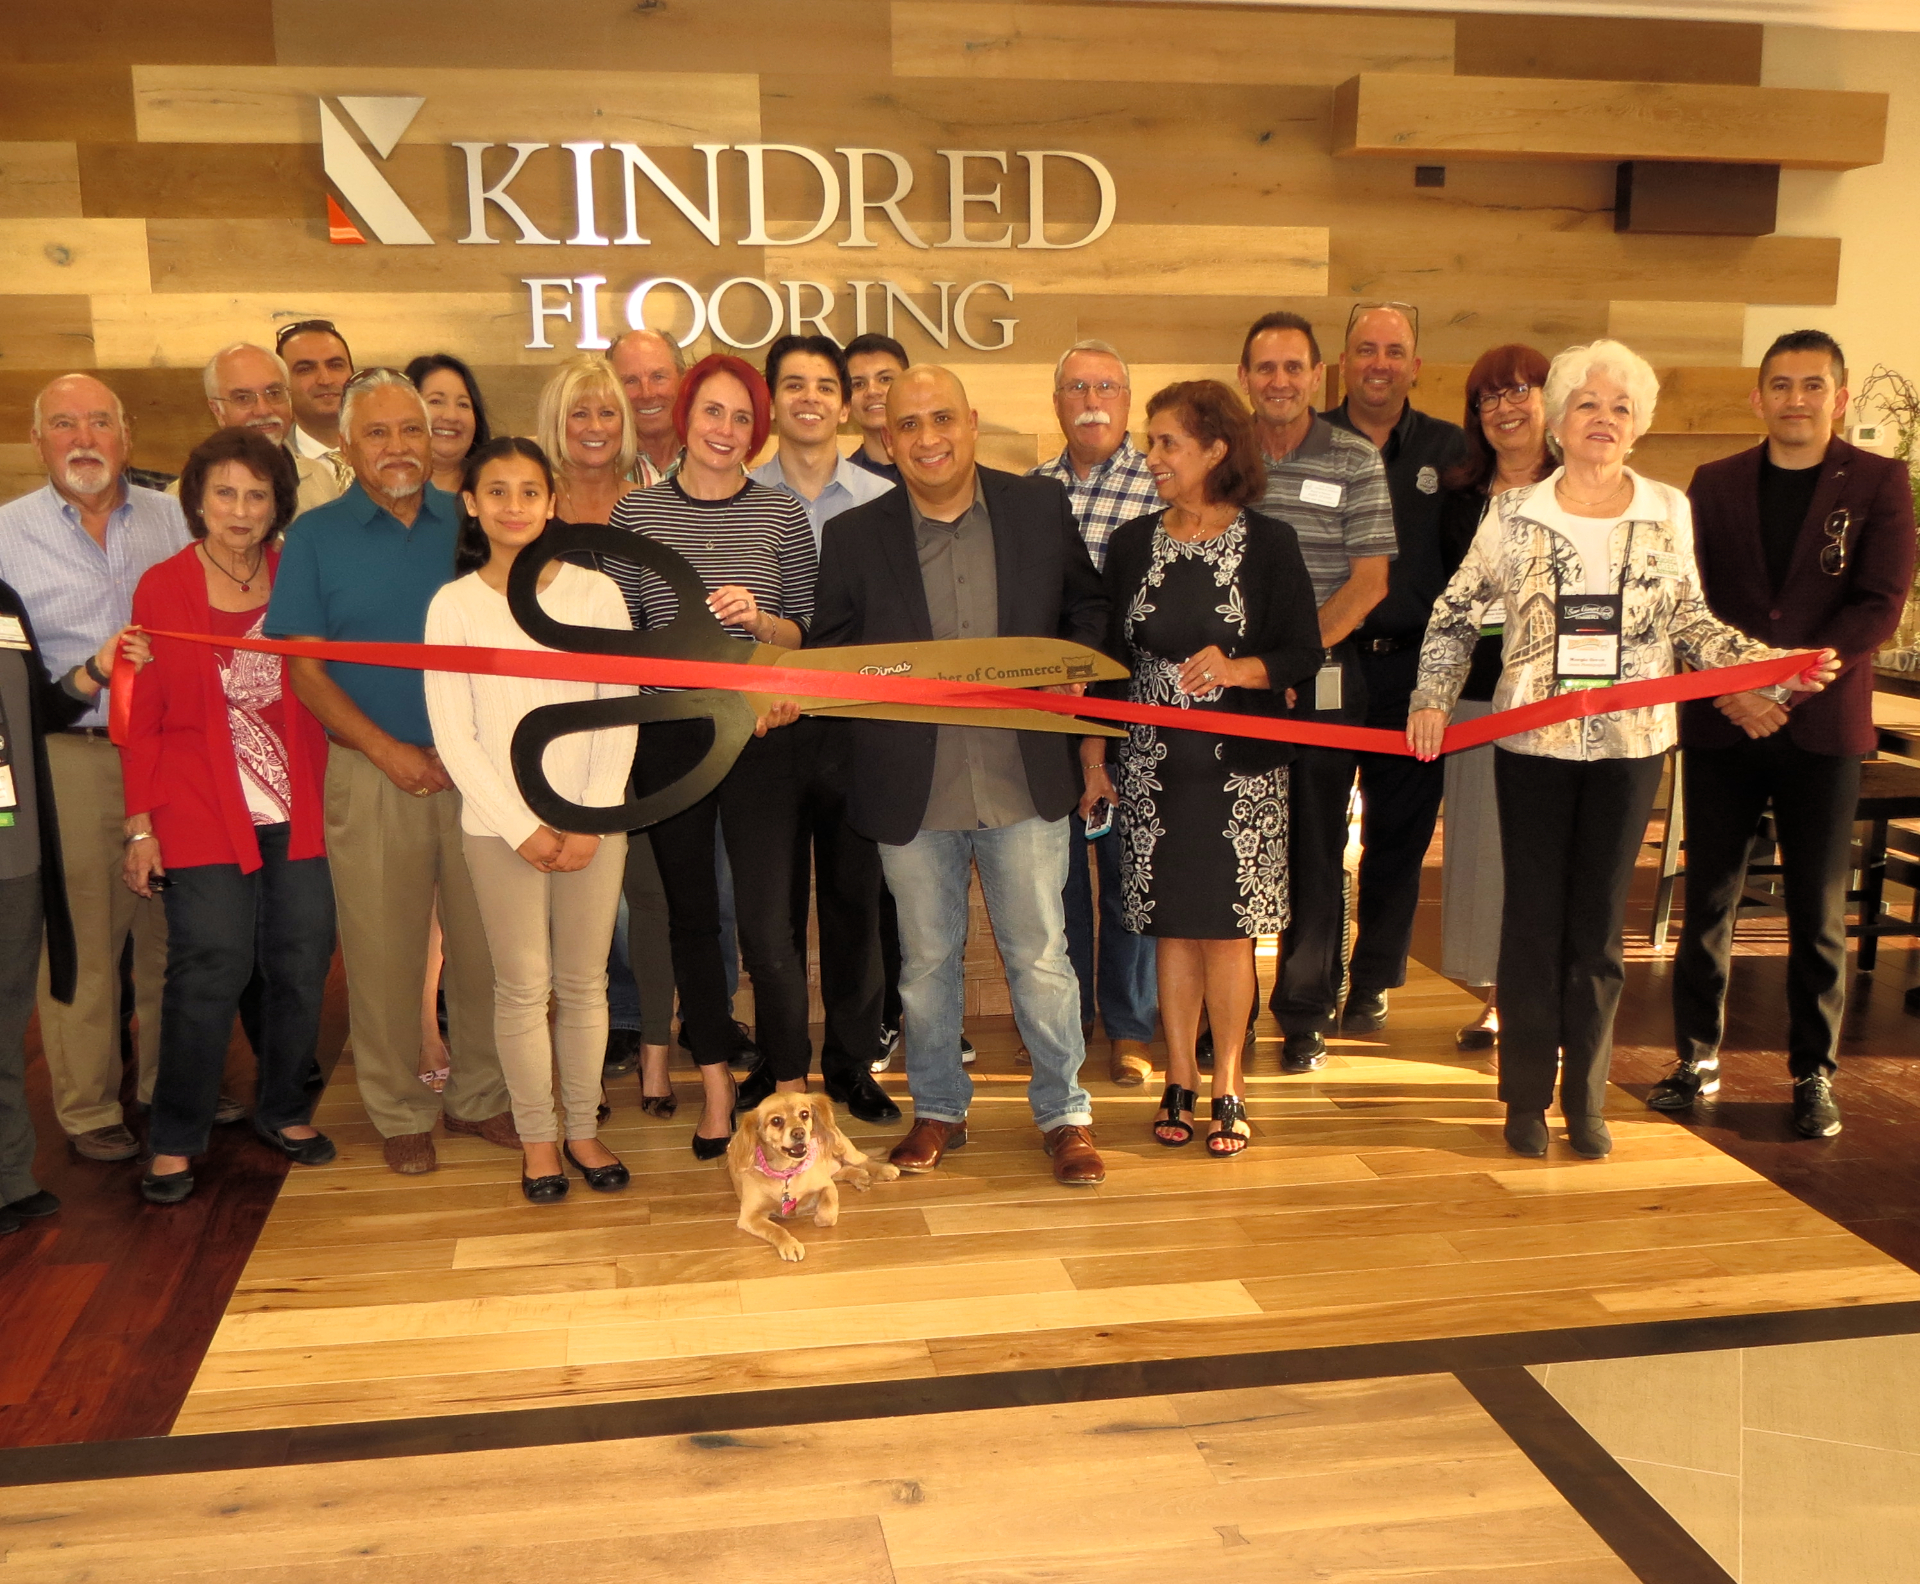 Kindred Flooring Ribbon Cutting Ceremony with the City of San Dimas 2/9/17